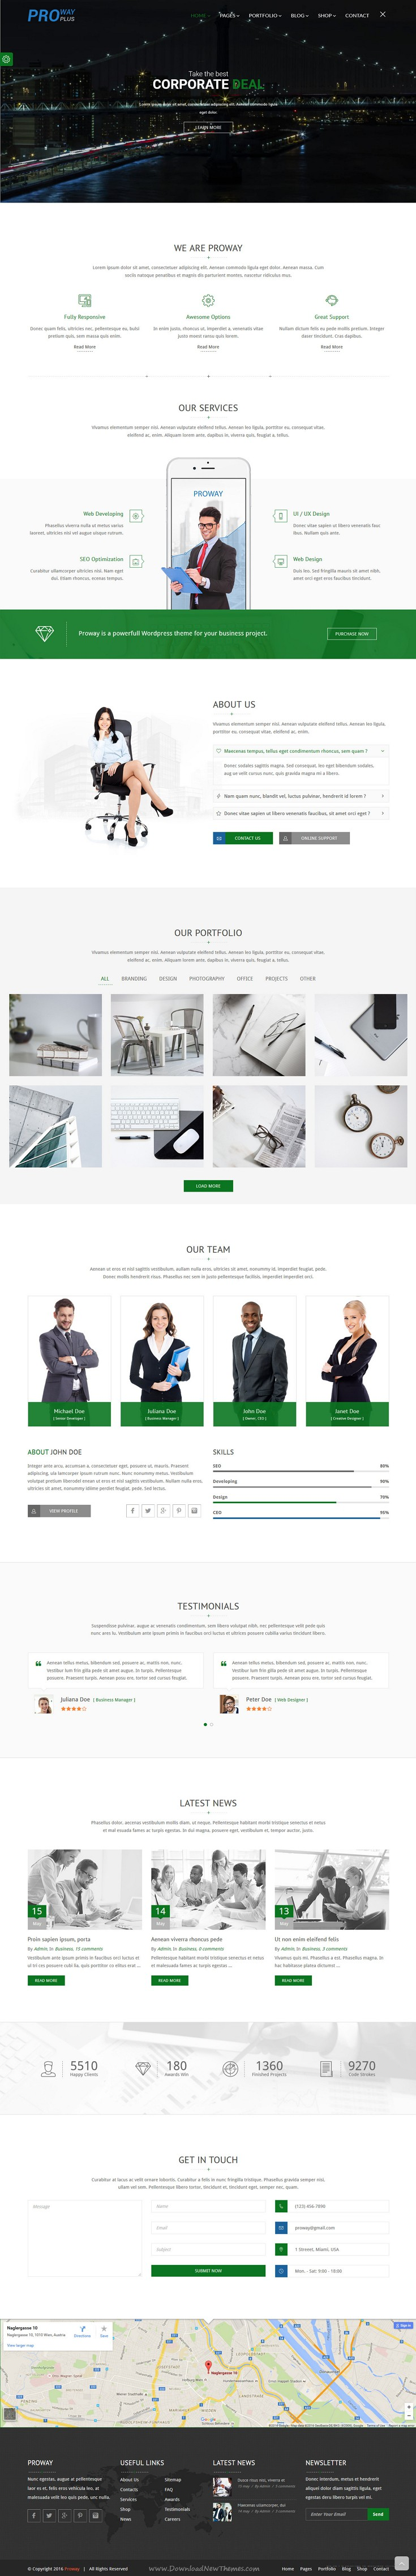 Proway Plus Is Fresh And Clean Design Bootstrap Template For Creative Agencies Personal Portfolios Online Shops Blogs Templates Business Finance Finance